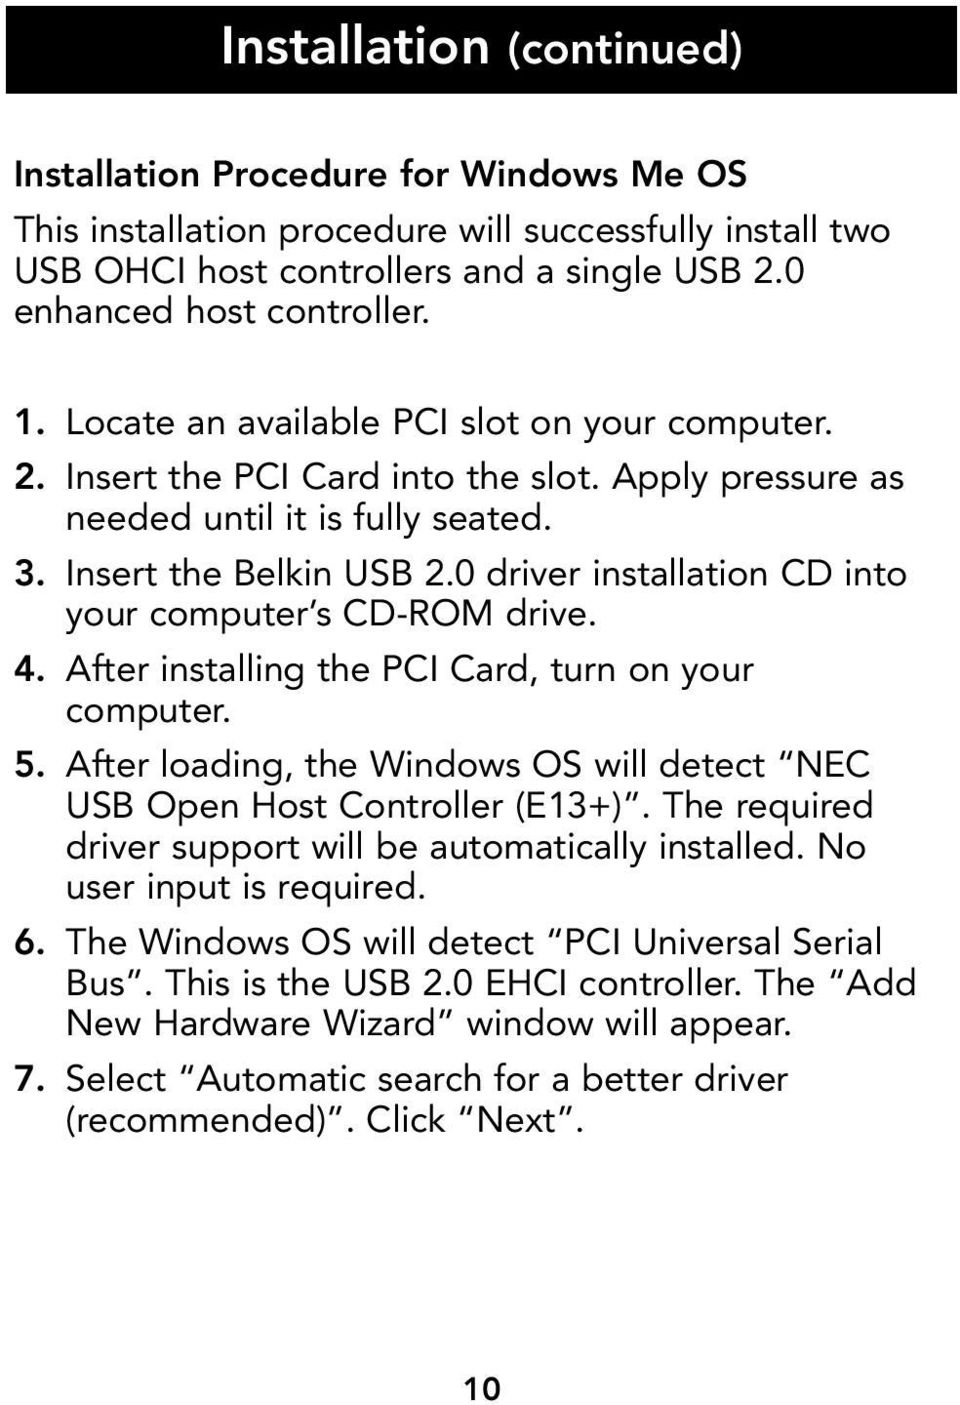 0 driver installation CD into your computer s CD-ROM drive. 4. After installing the PCI Card, turn on your computer. 5. After loading, the Windows OS will detect NEC USB Open Host Controller (E13+).